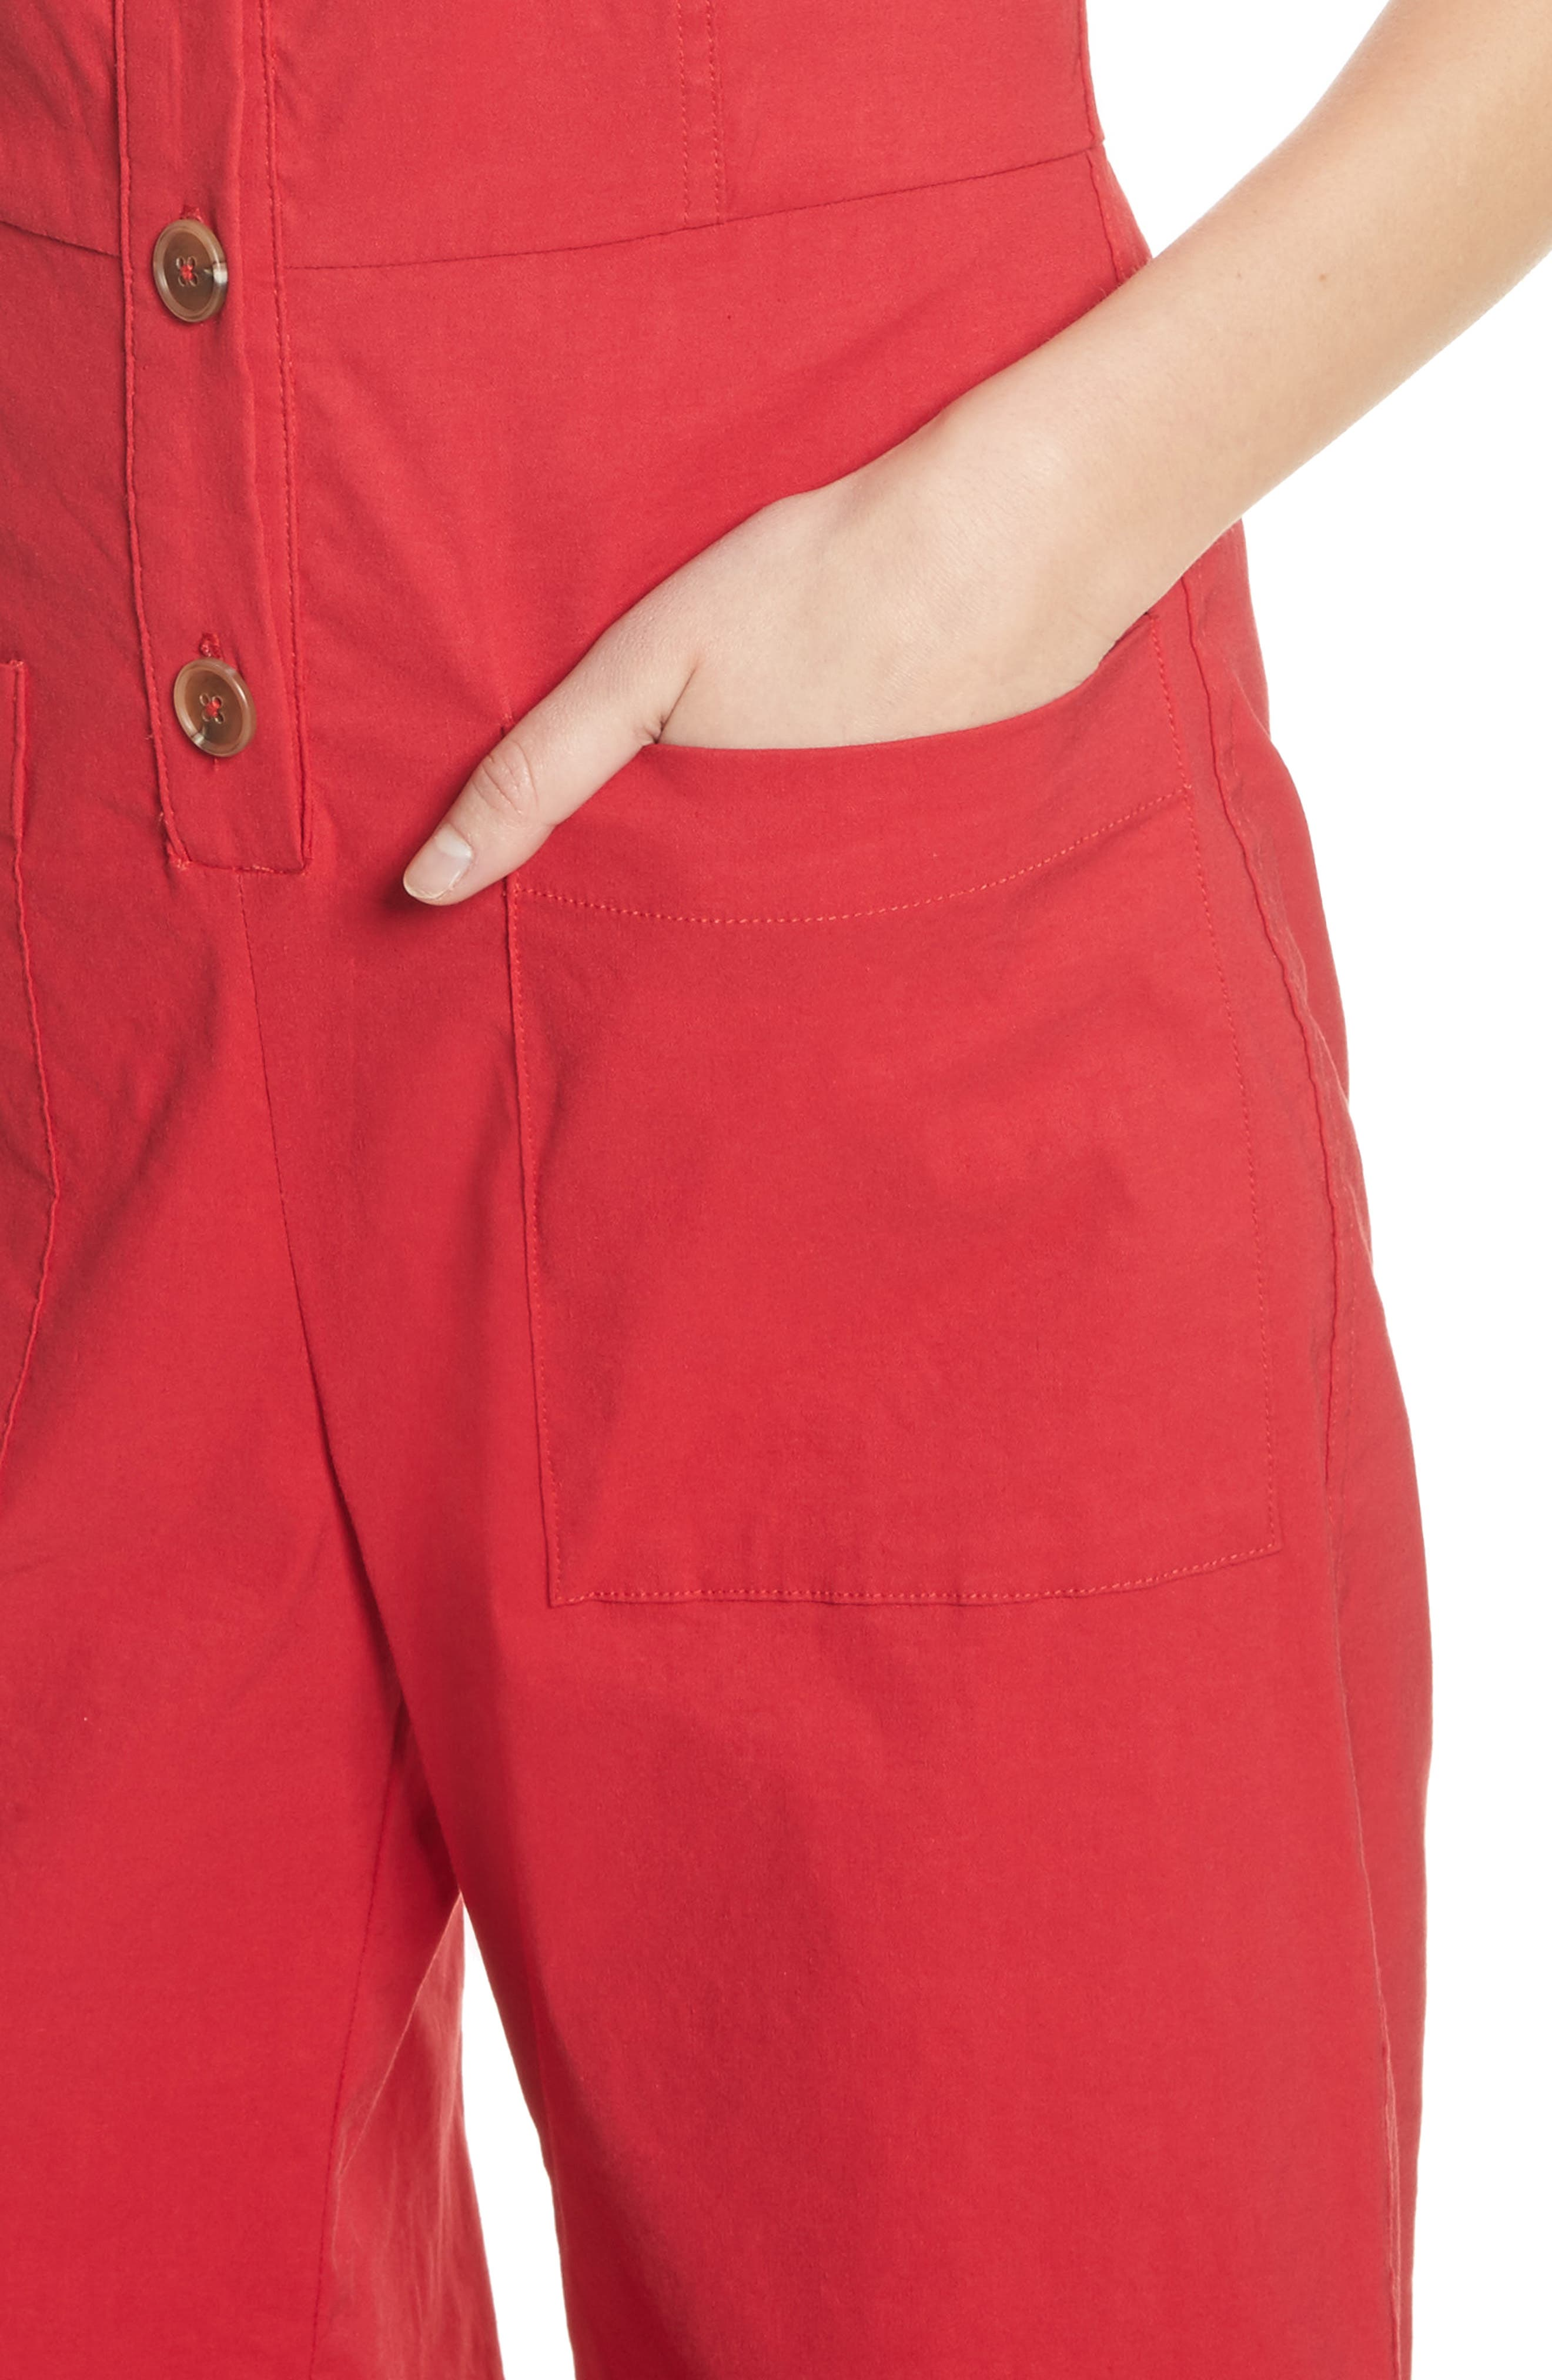 Callie Ruffle Strap Jumpsuit,                             Alternate thumbnail 4, color,                             Red